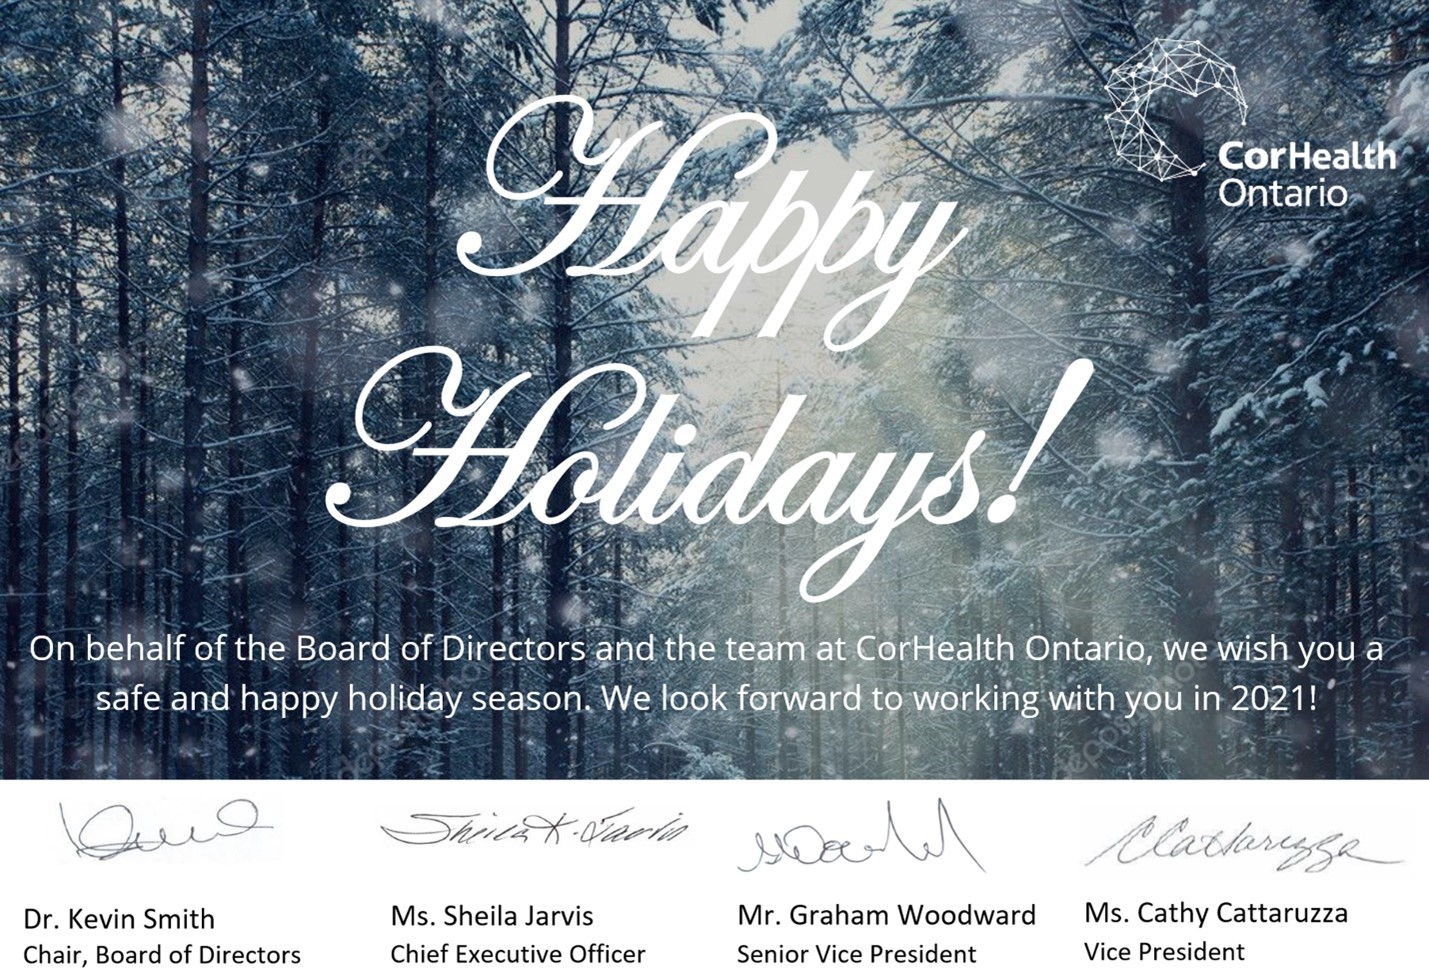 """Happy Holidays"" is written in white over a snow-covered forest background with the signatures of senior leadership from CorHealth on the bottom, including Dr. Kevin Smith (Board Chair), Ms. Sheila Jarvis (CEO), Mr. Graham Woodward (SVP), and Ms. Cathy Cattaruzza (VP)."